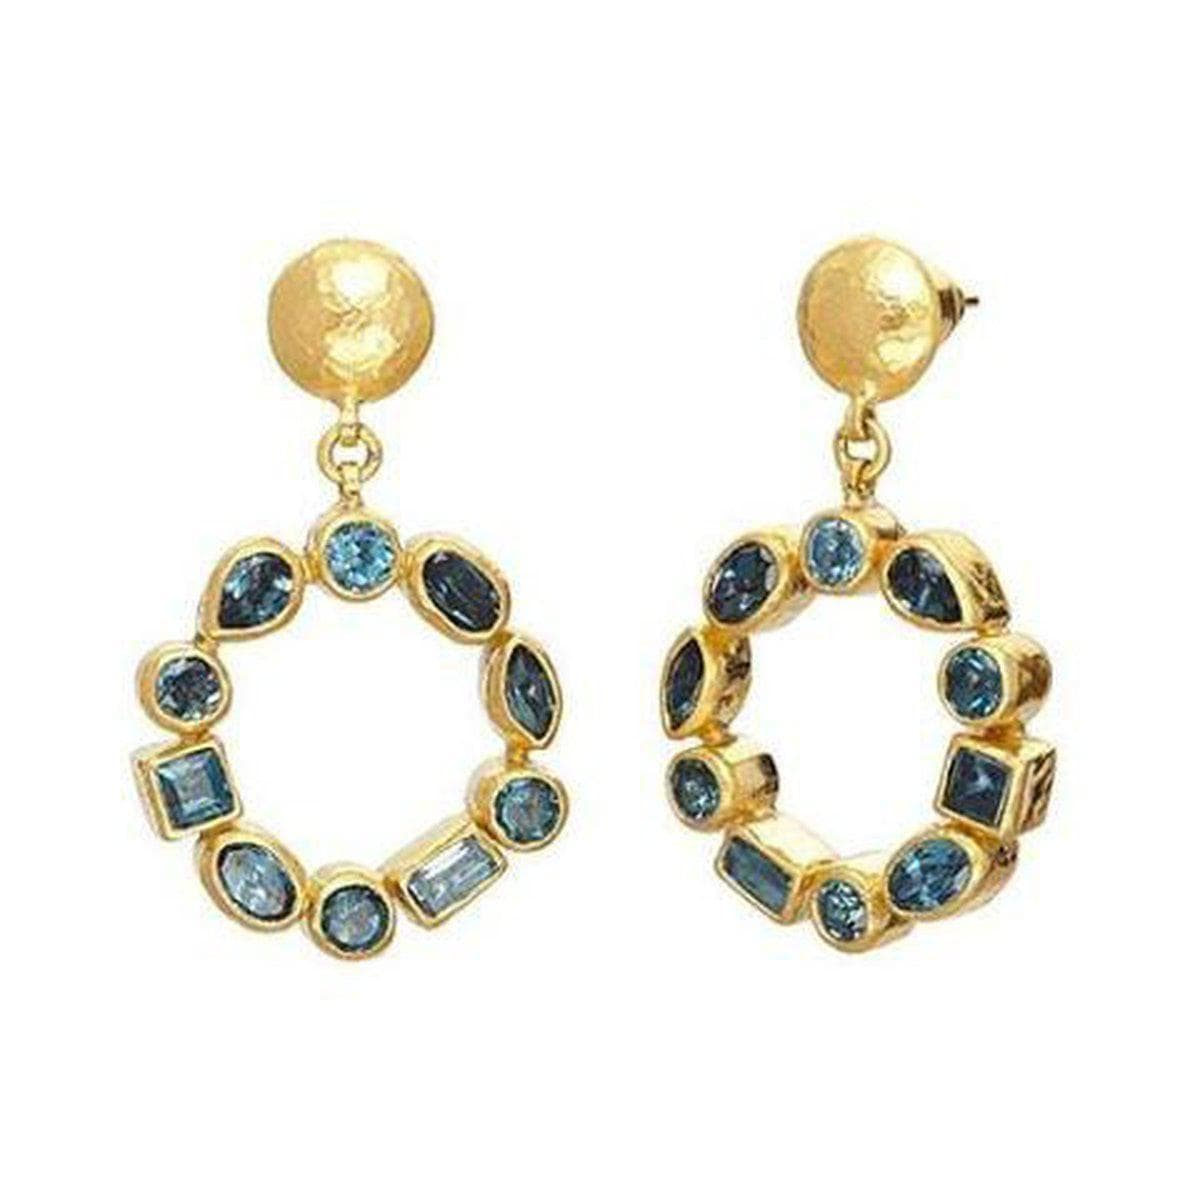 Pointelle 24K Gold Blue Topaz Earrings - E-U23579-BT-GURHAN-Renee Taylor Gallery